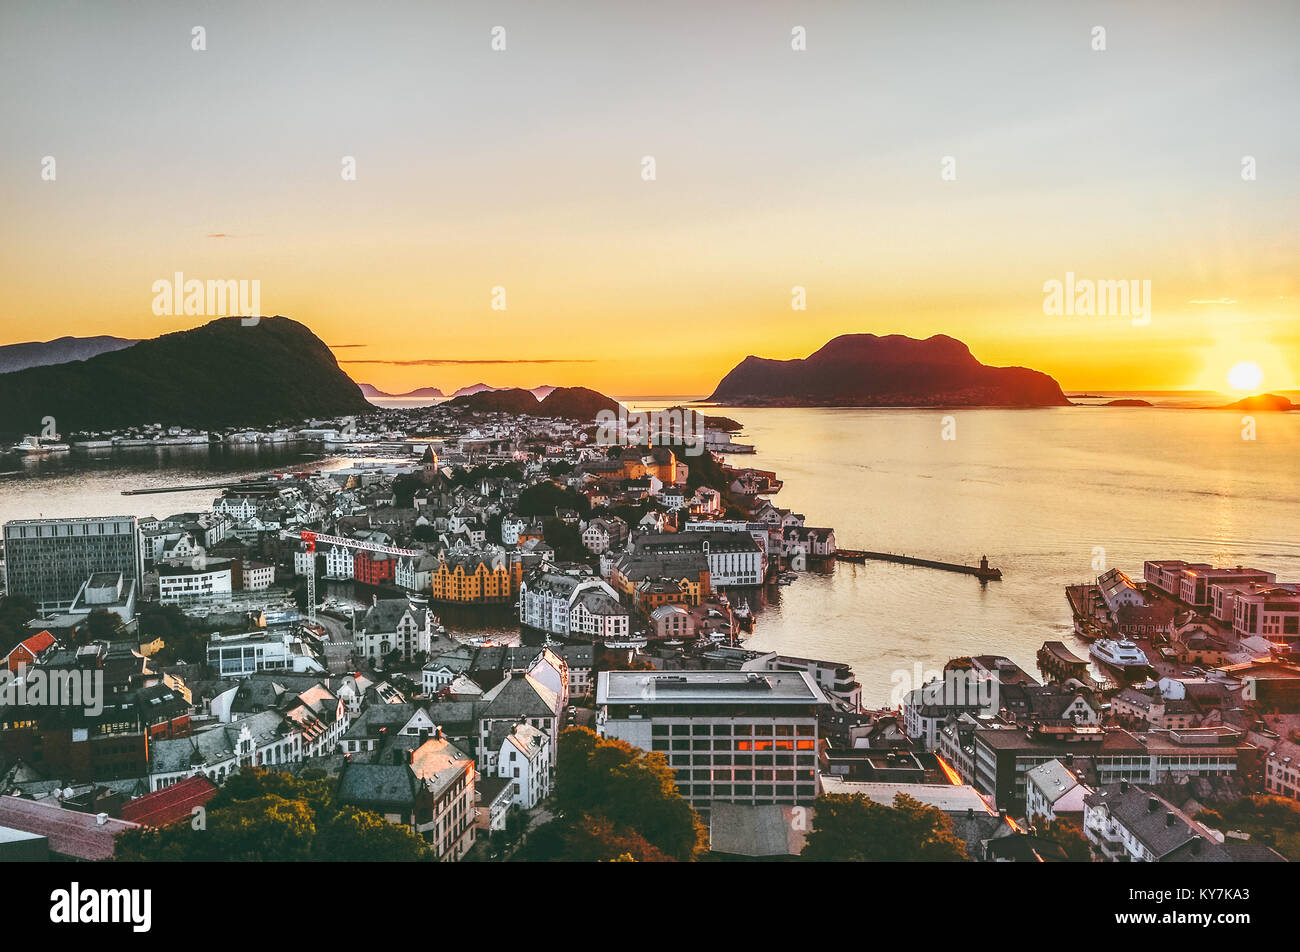 Alesund city in Norway sunset aerial view cityscape scandinavian traditional architecture - Stock Image